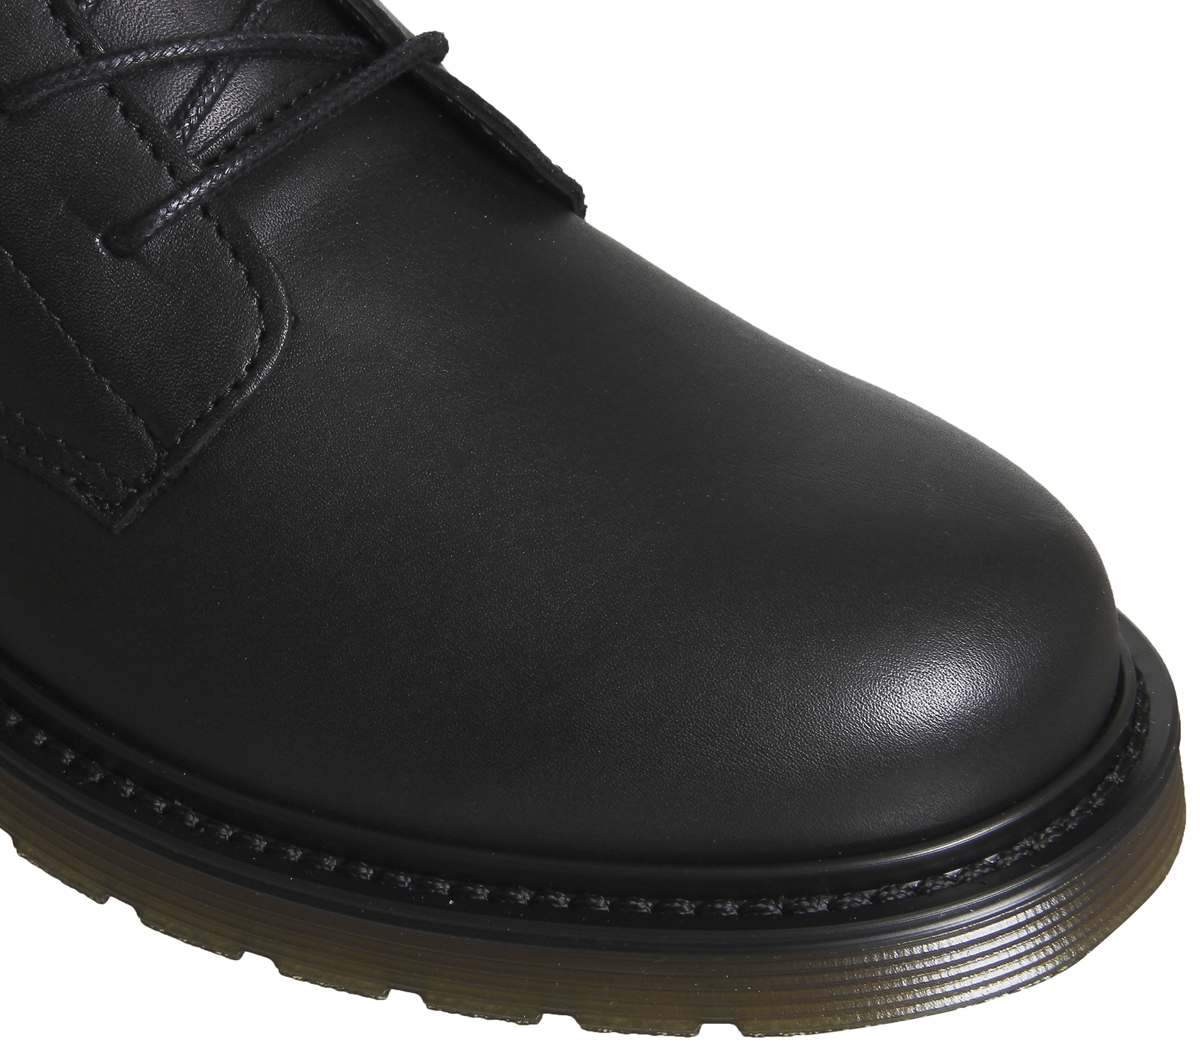 Damenschuhe Cleated Office Audio Lace Up Cleated Damenschuhe Stiefel BLACK LEATHER Stiefel 4876a5